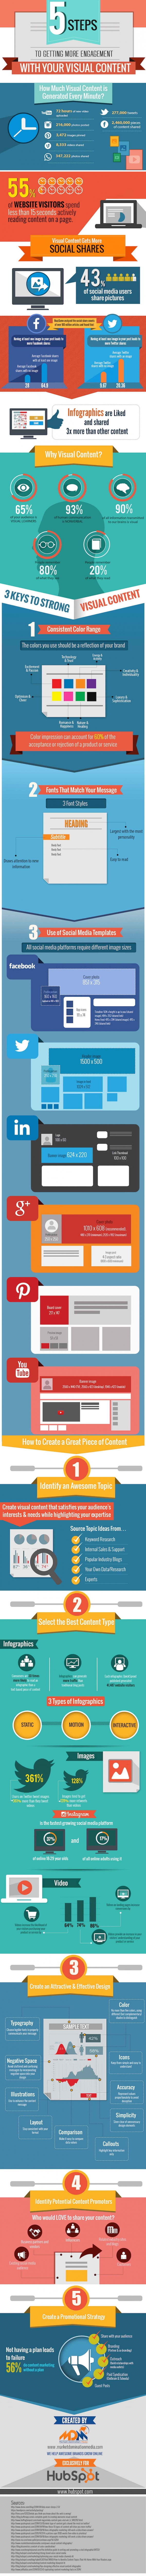 Content Marketing – Social Media Tipps Bildergrößen Marketingstrategie Infografik visueller Content